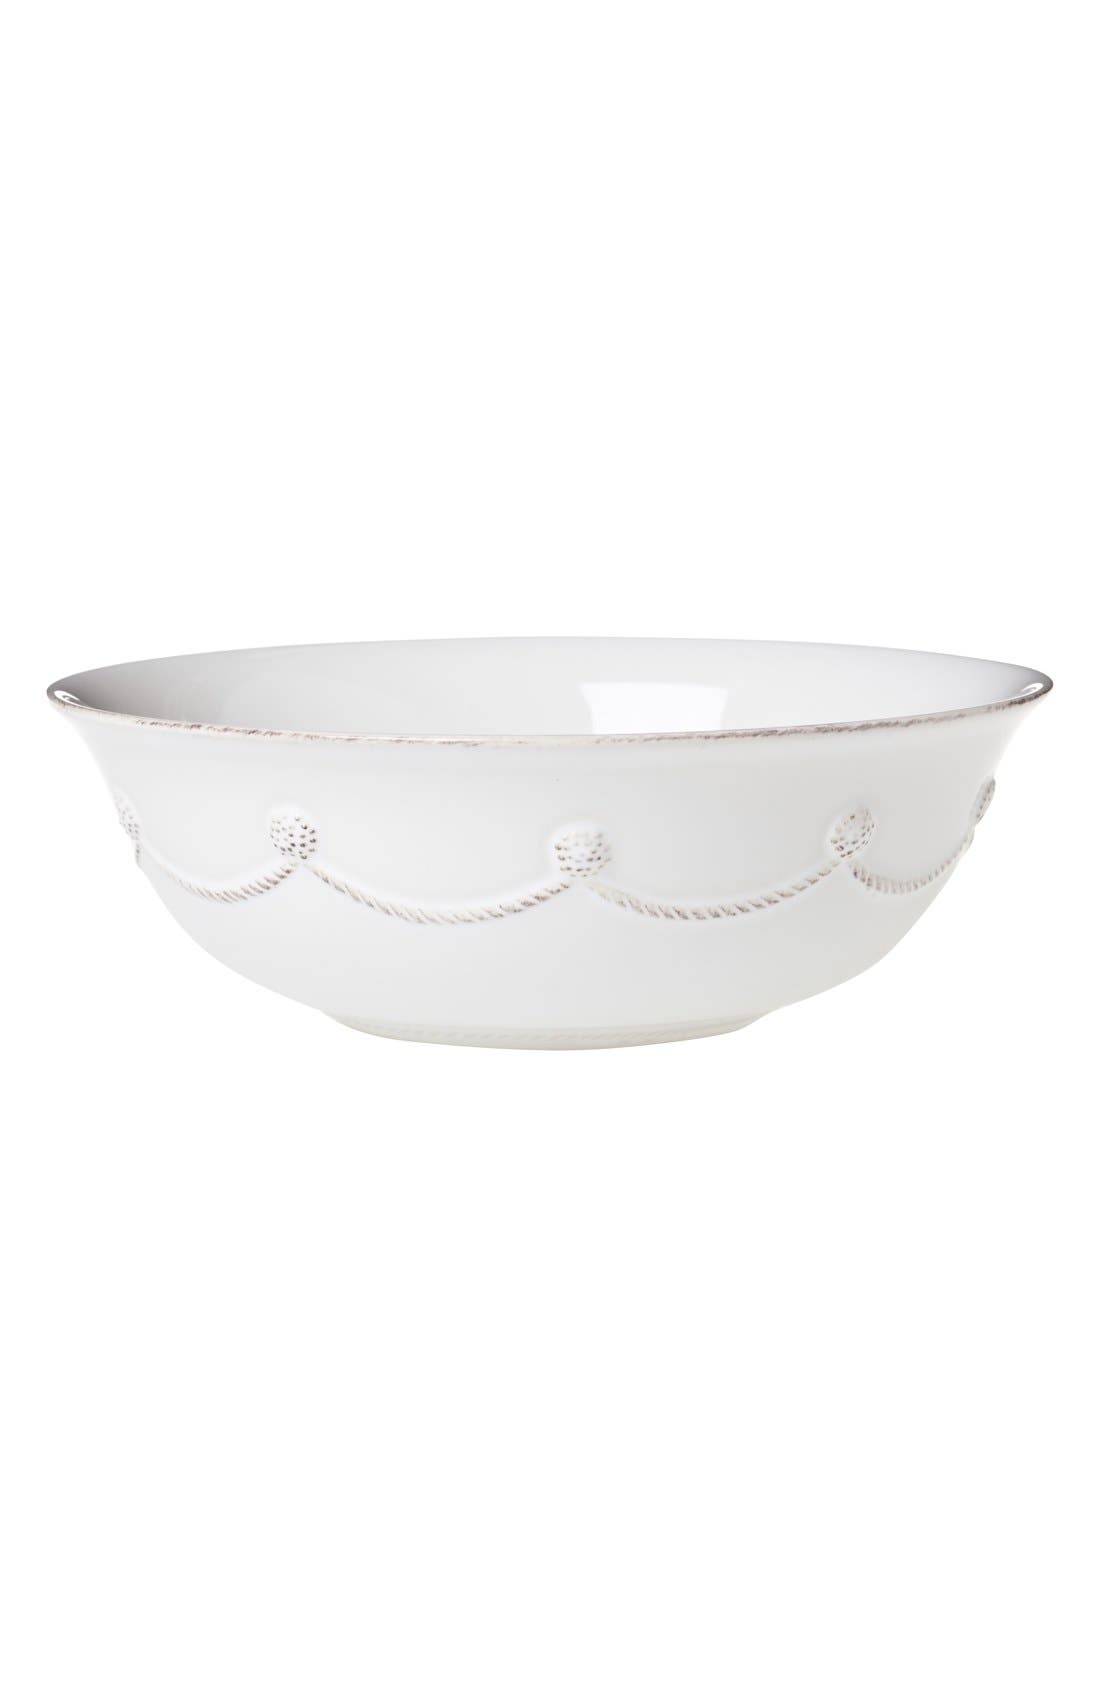 'Berry and Thread' Ceramic Serving Bowl,                         Main,                         color, Whitewash